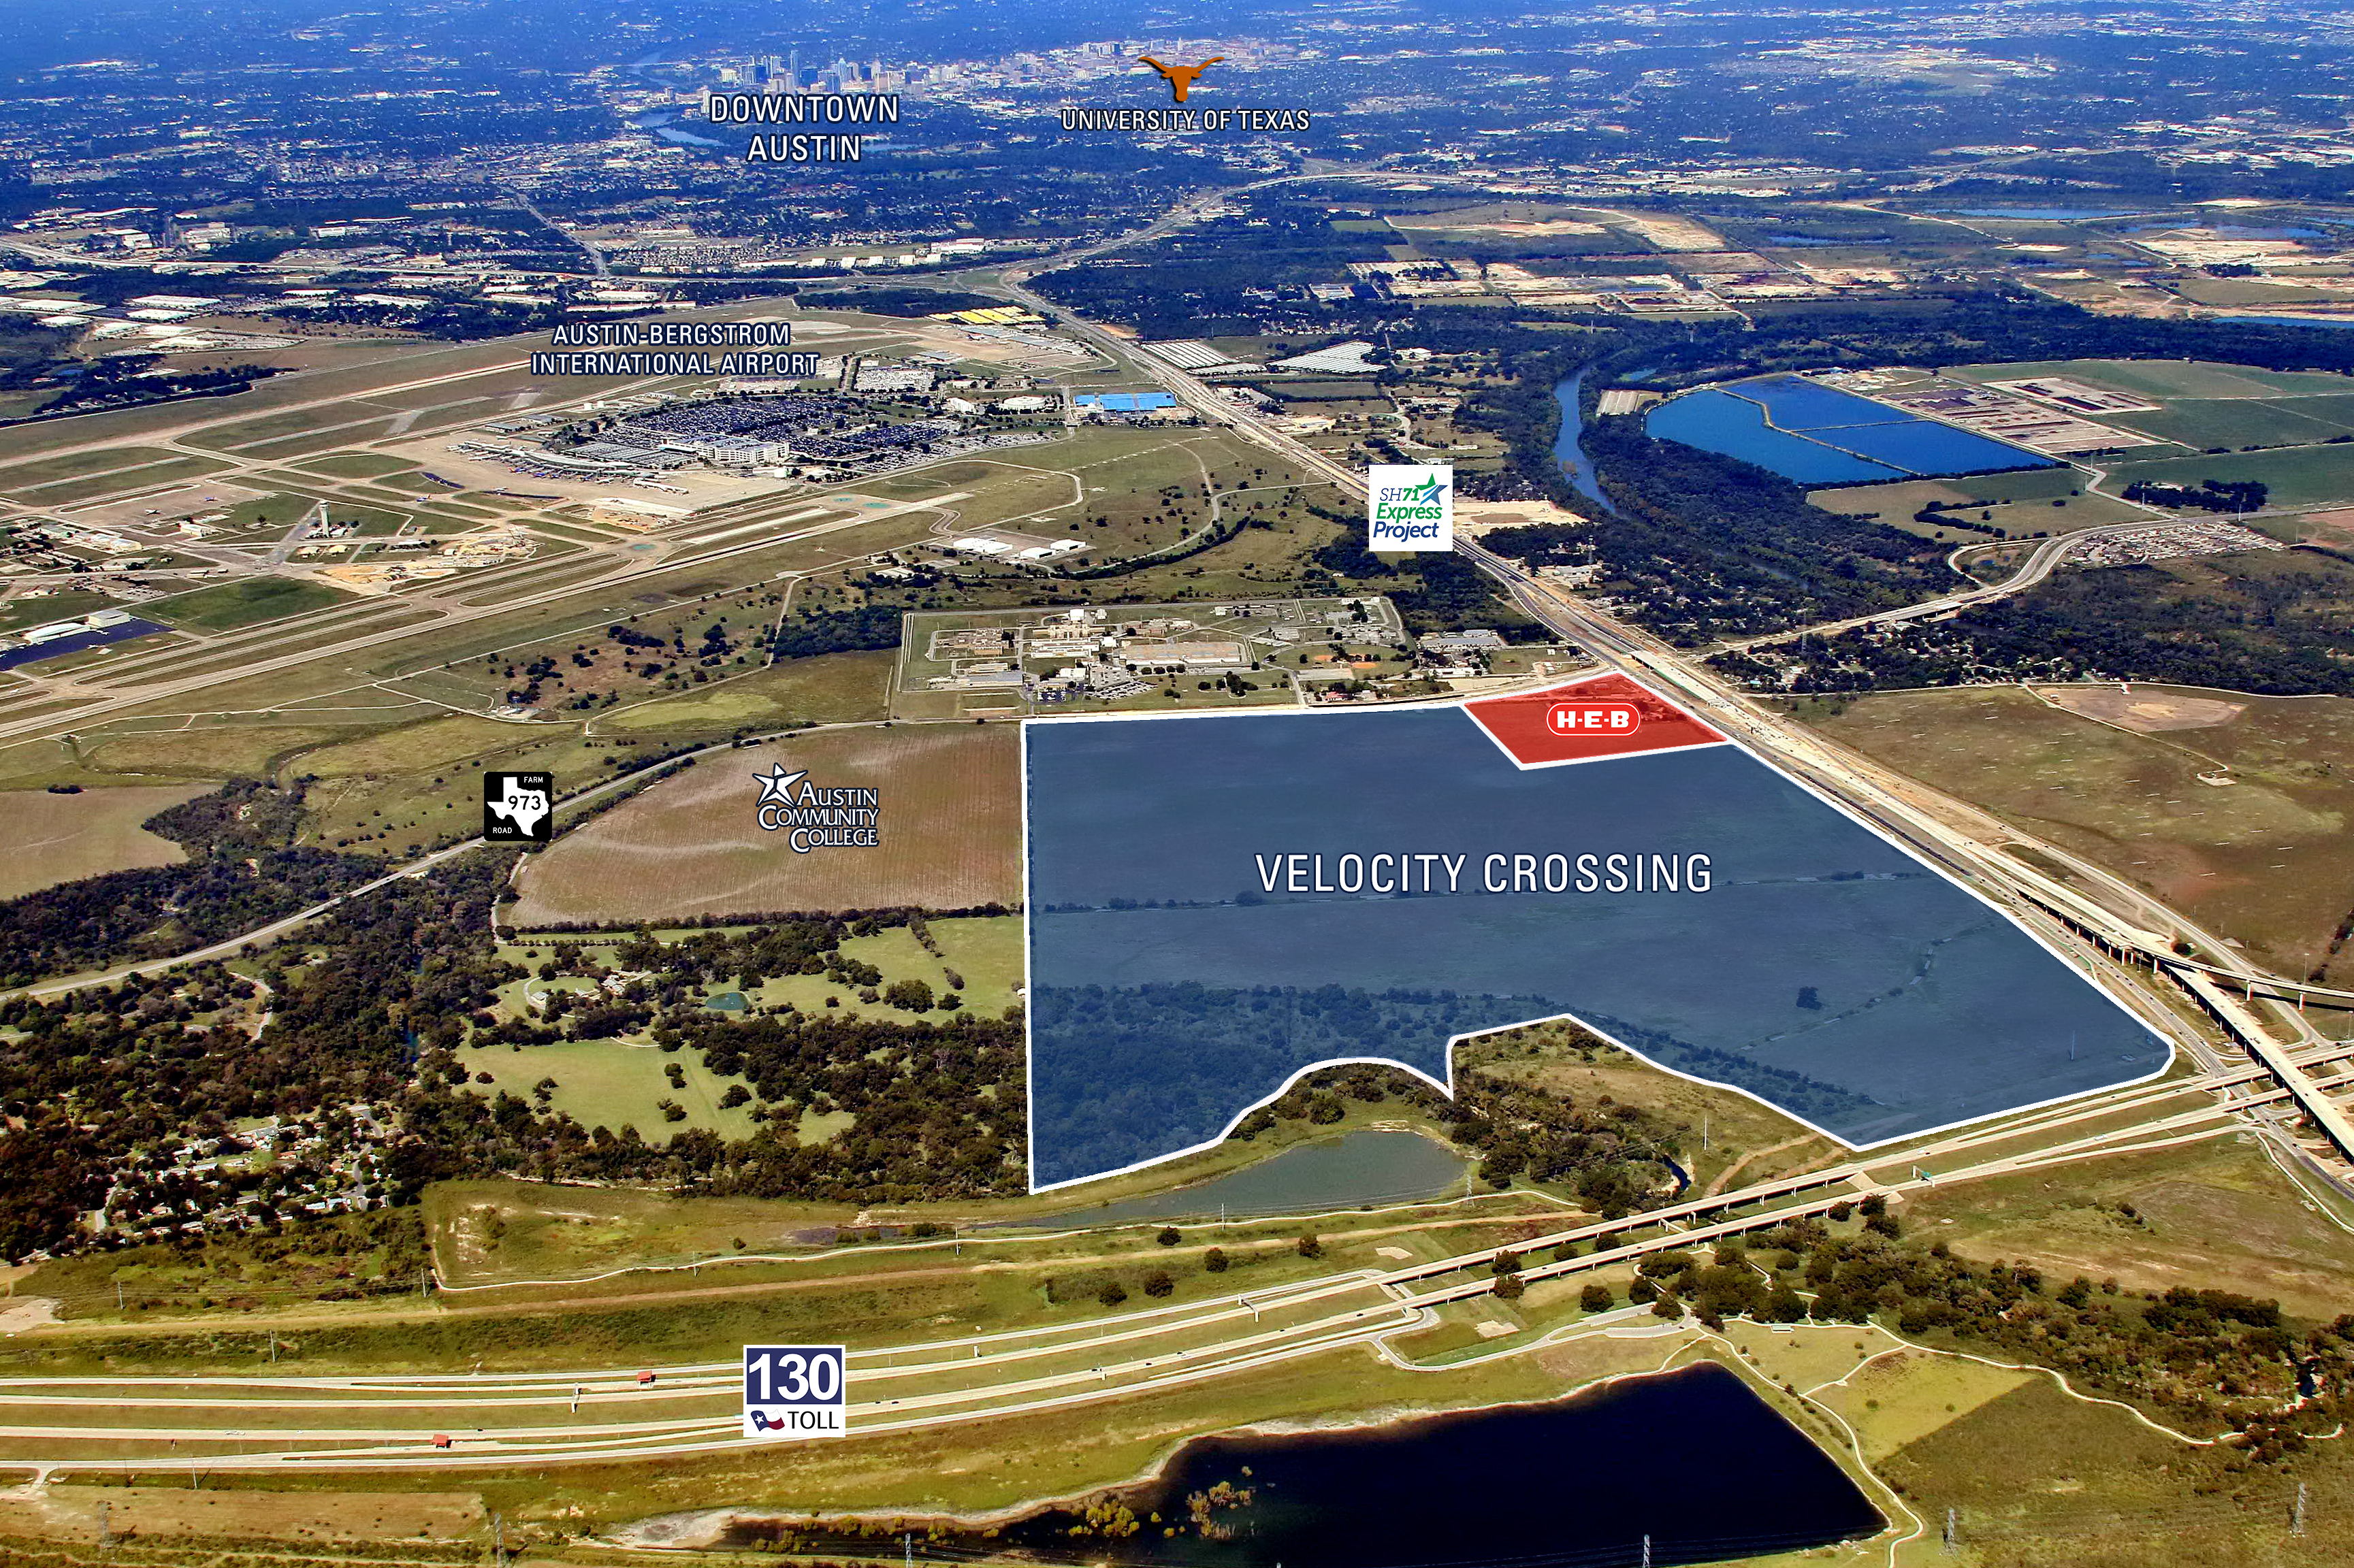 Velocity Crossing will cover at least 375 acres in southeast Austin, which will include retail, office, residential, and other uses. (Marketplace Real Estate Group)